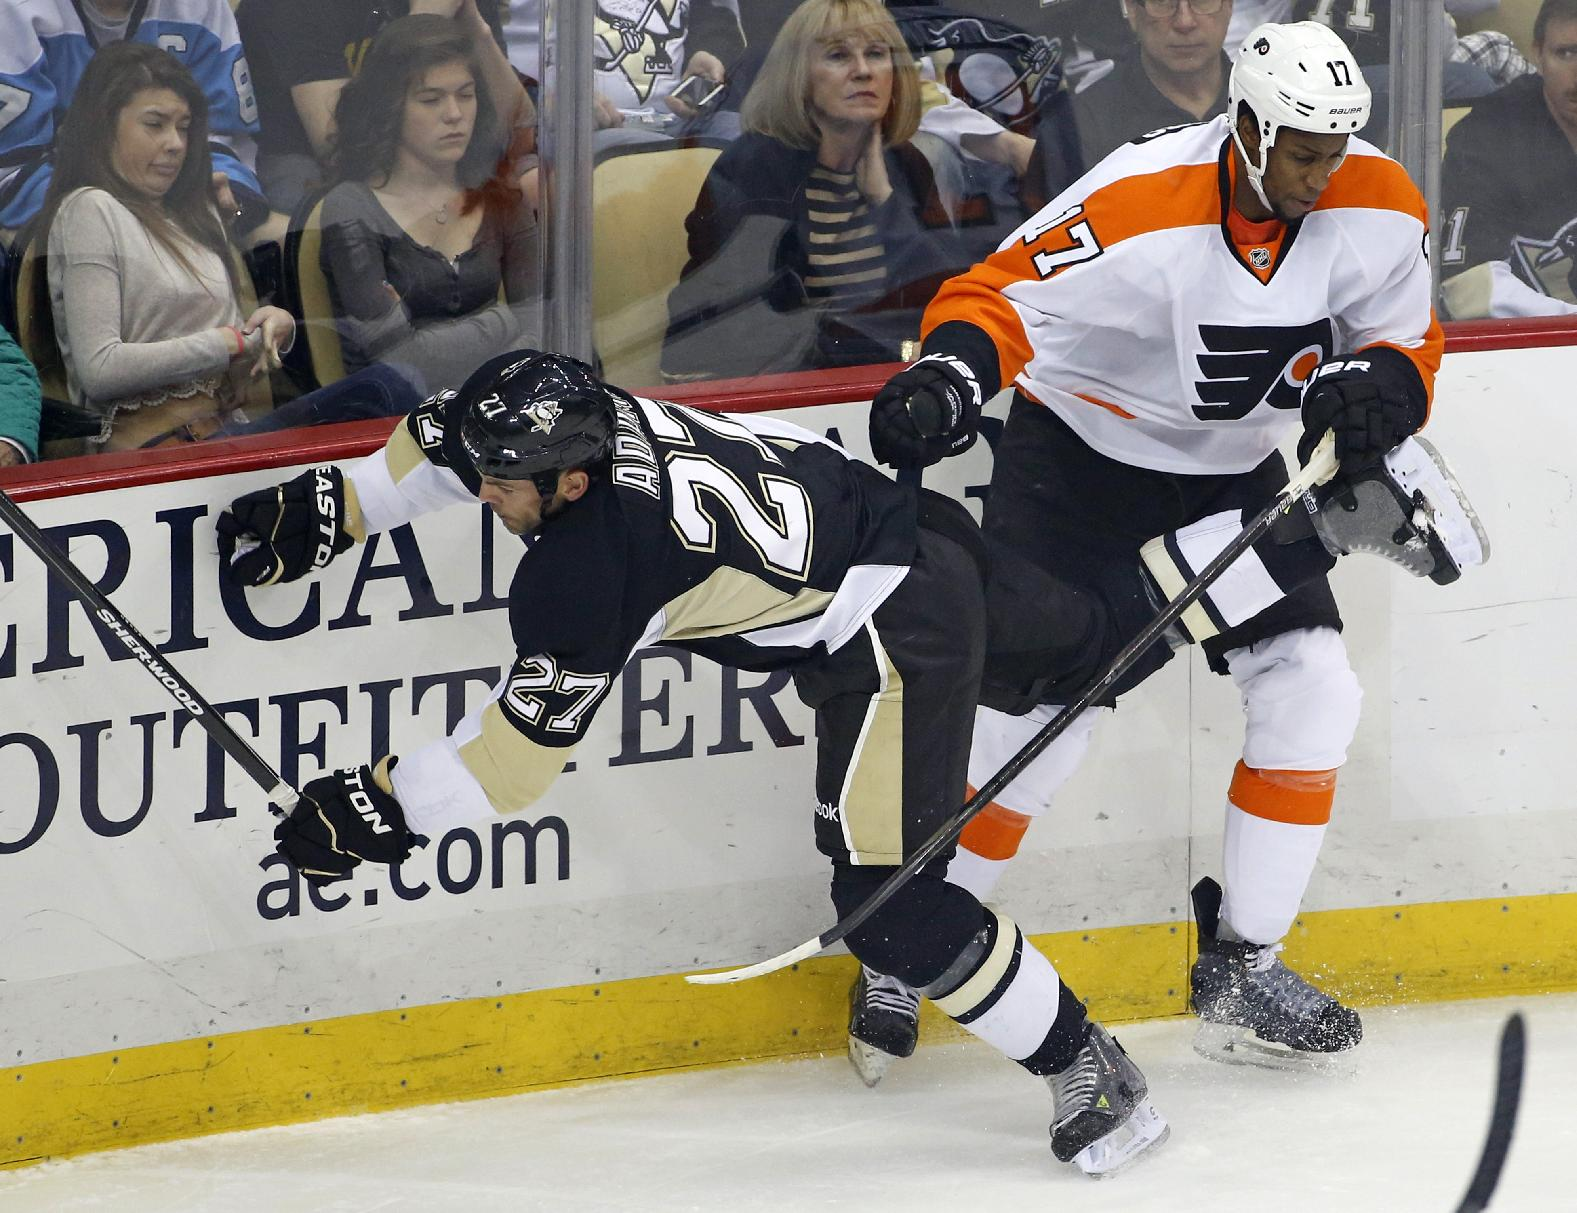 Philadelphia Flyers' Wayne Simmonds (17) collides with Pittsburgh Penguins' Craig Adams (27) during the first period of an NHL hockey game in Pittsburgh, Saturday, April 12, 2014